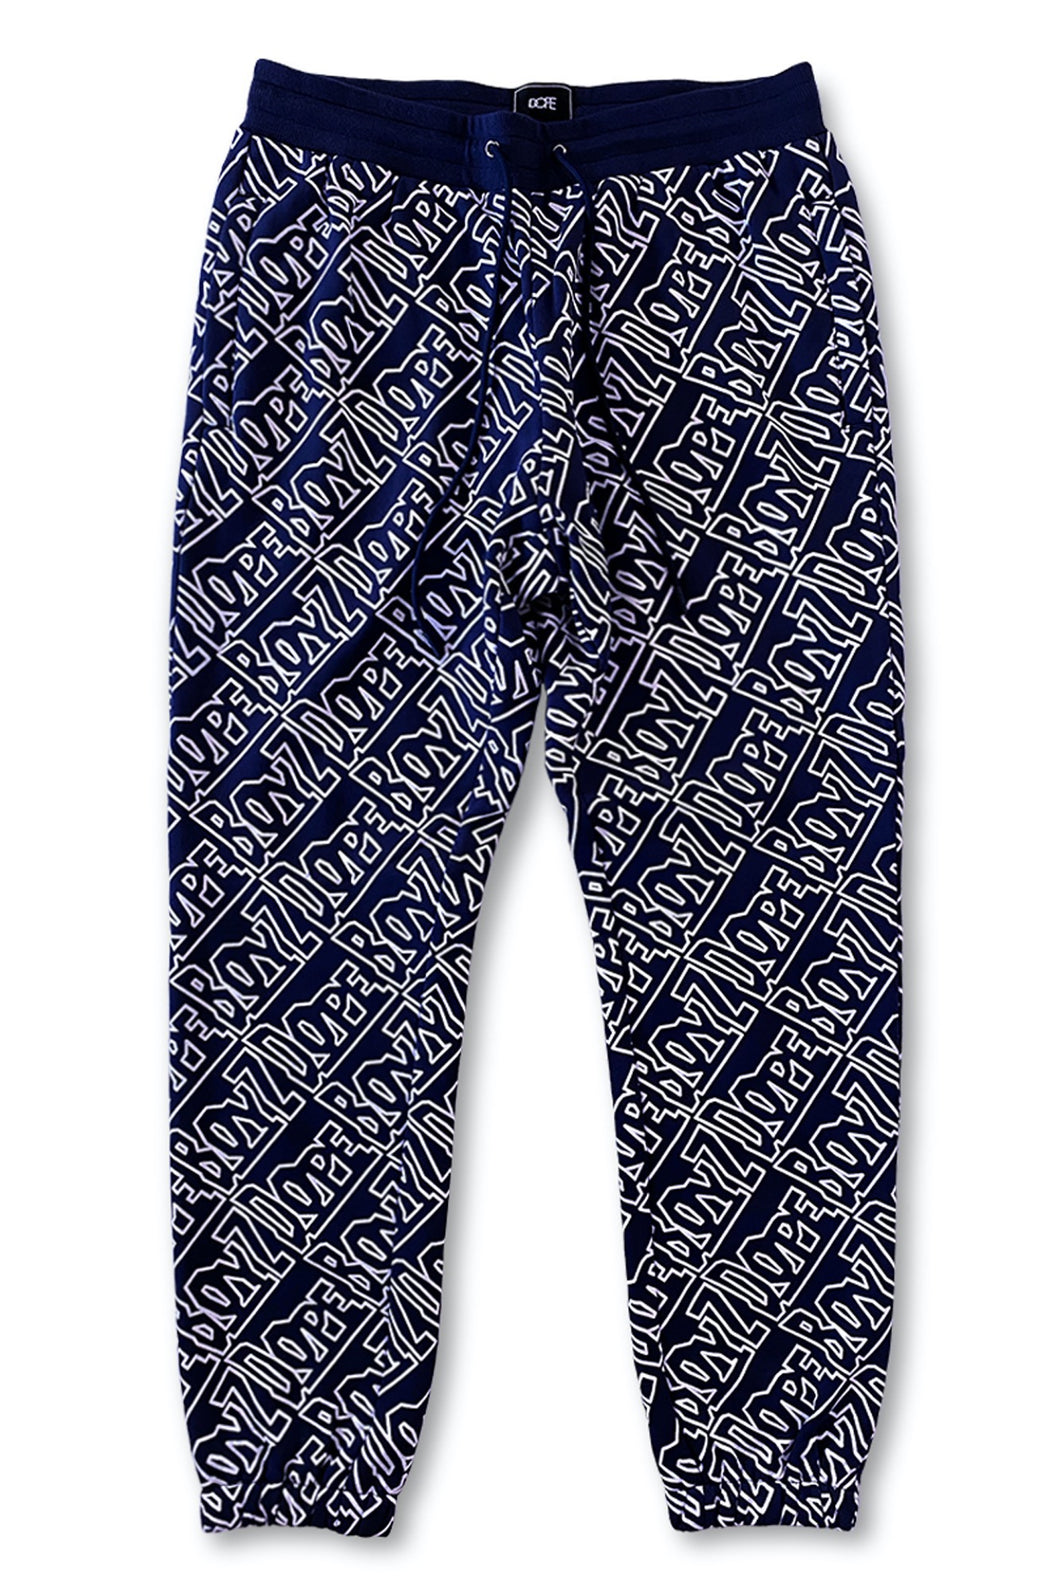 DOPE Boyz 12oz Fleece Pant